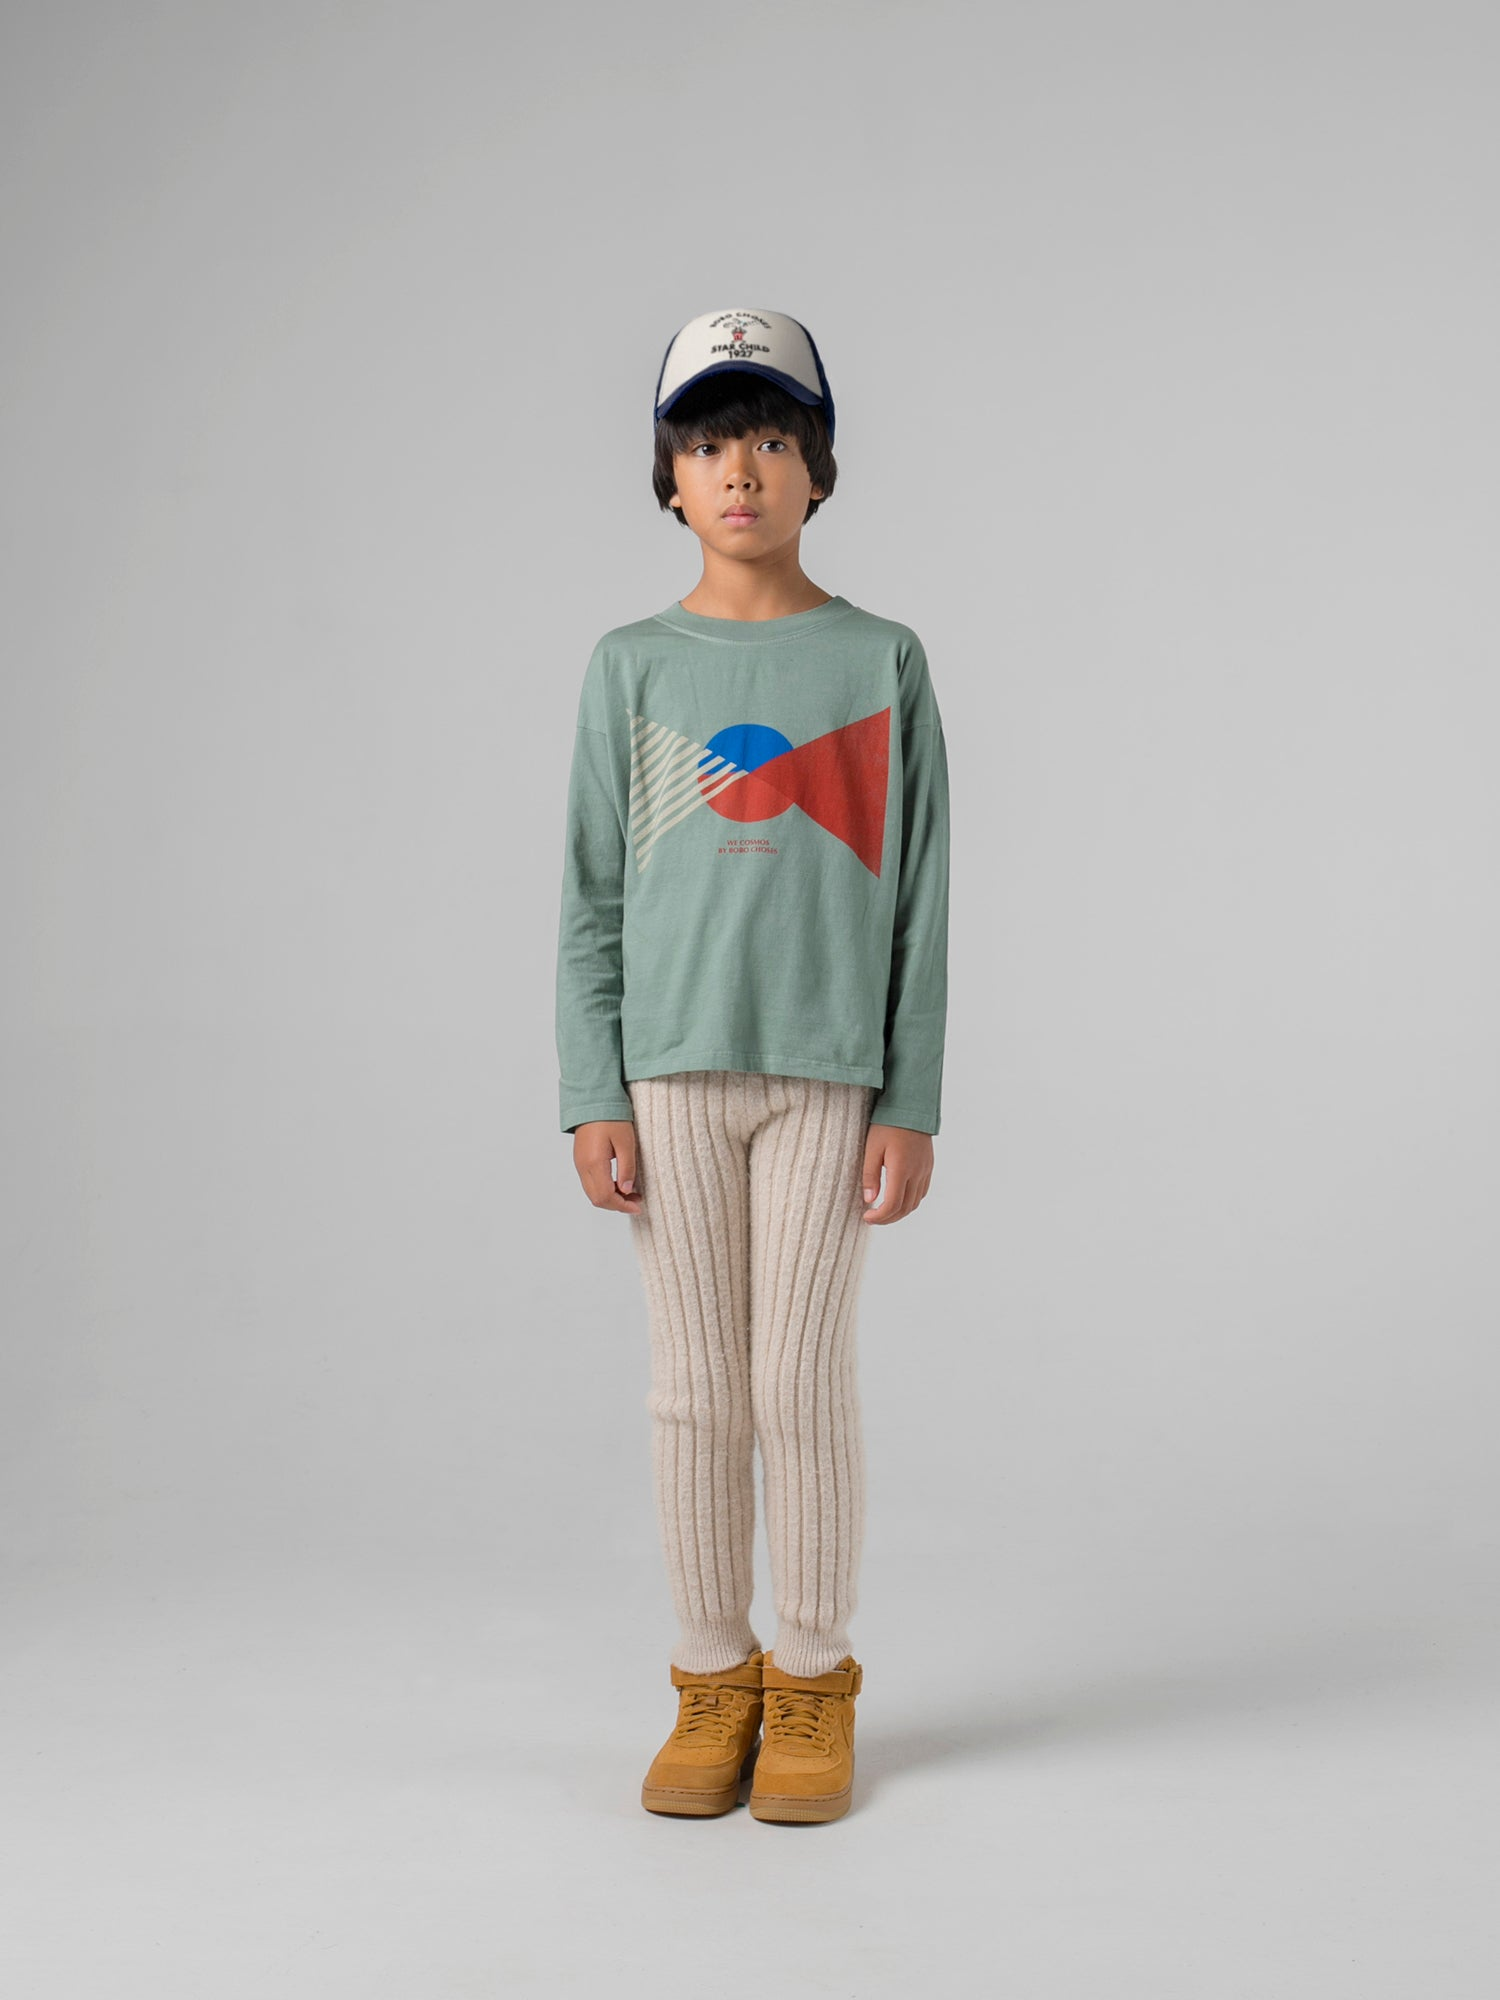 Bobo Choses Ribbed Knit Kid's Legging Beige | BIEN BIEN www.bienbienshop.com